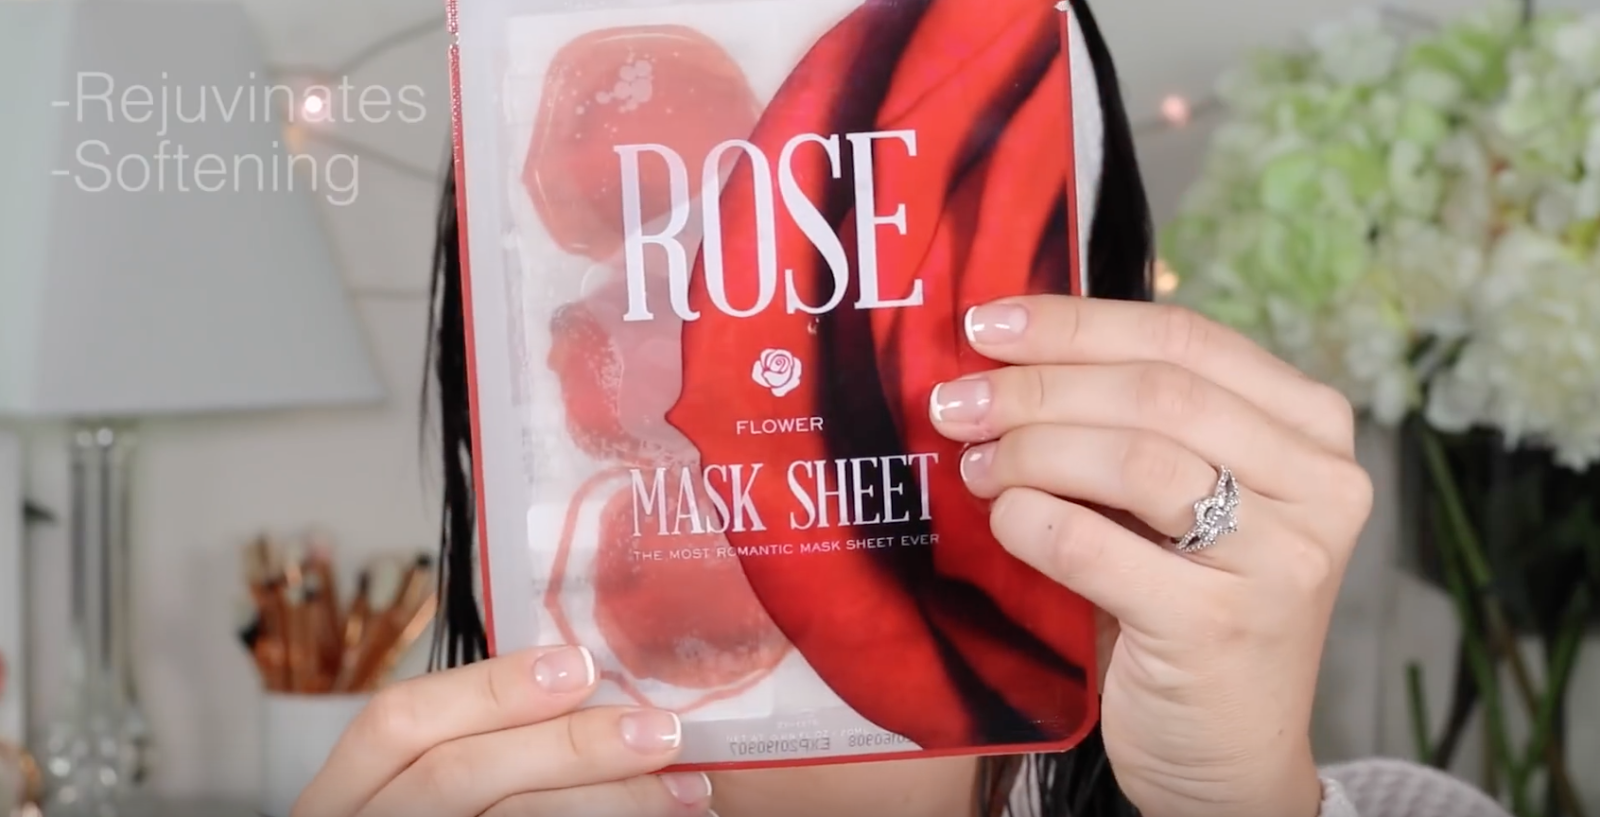 Chloe Morello: Cucumber and Petal Face Masks! Korean Slice Mask!